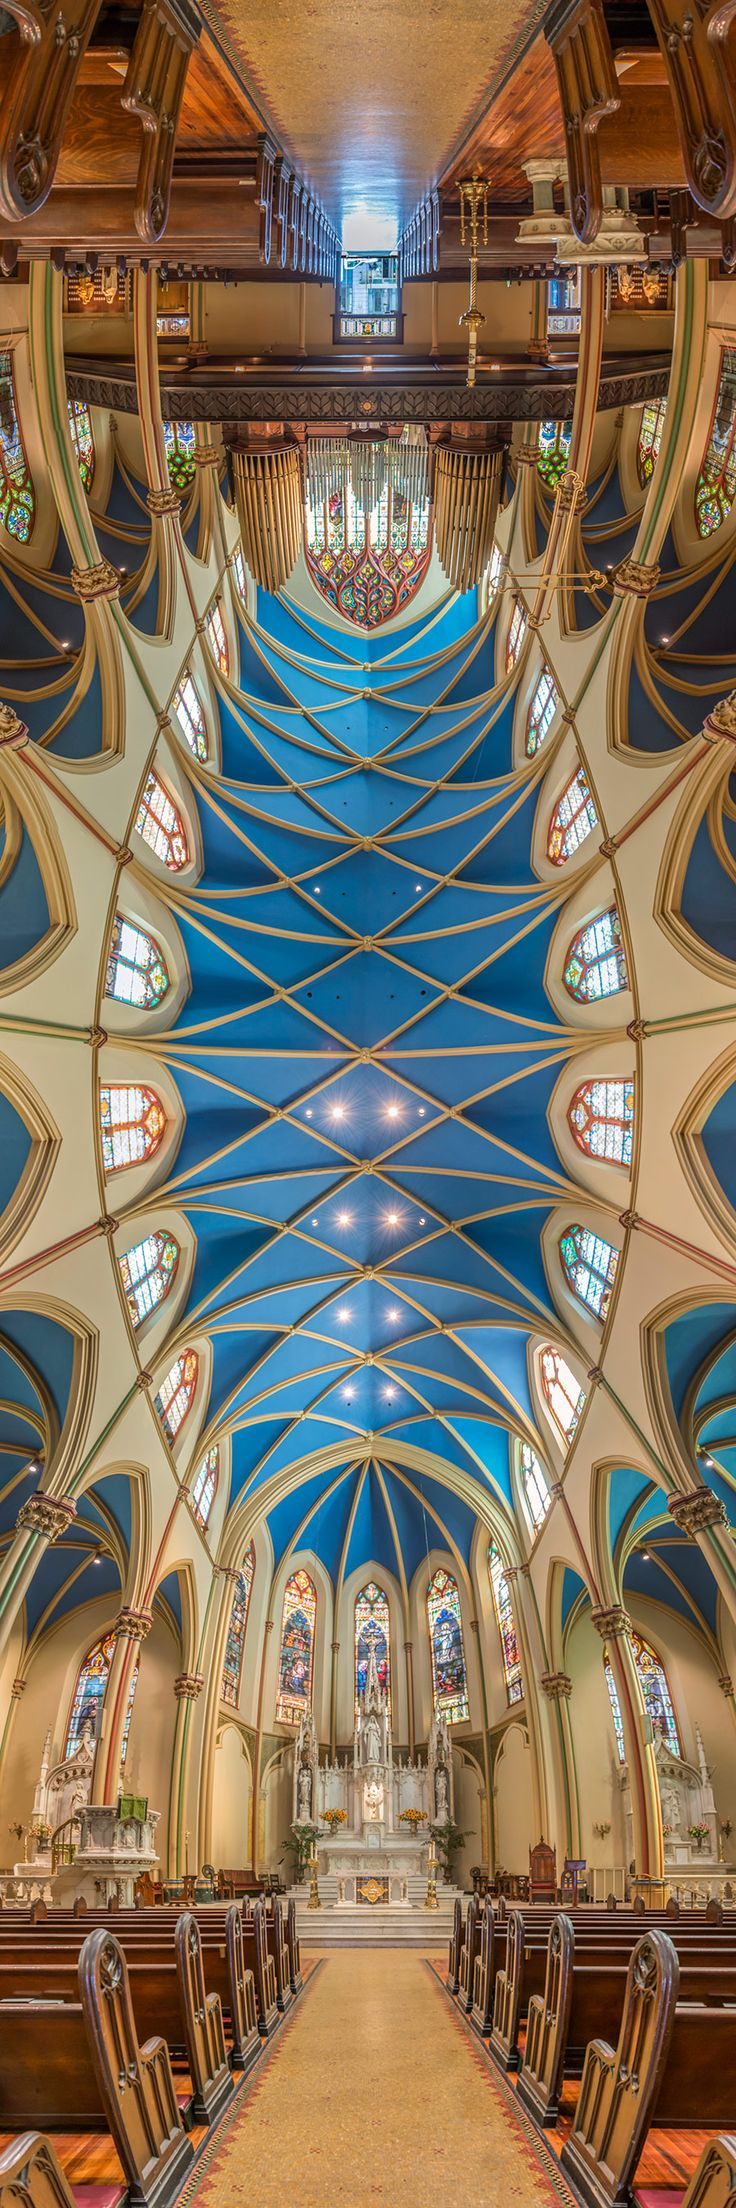 "Richard Silver ~ ""St. Monica's Church"" from his series of vertical panoramic photos of churches of New York"